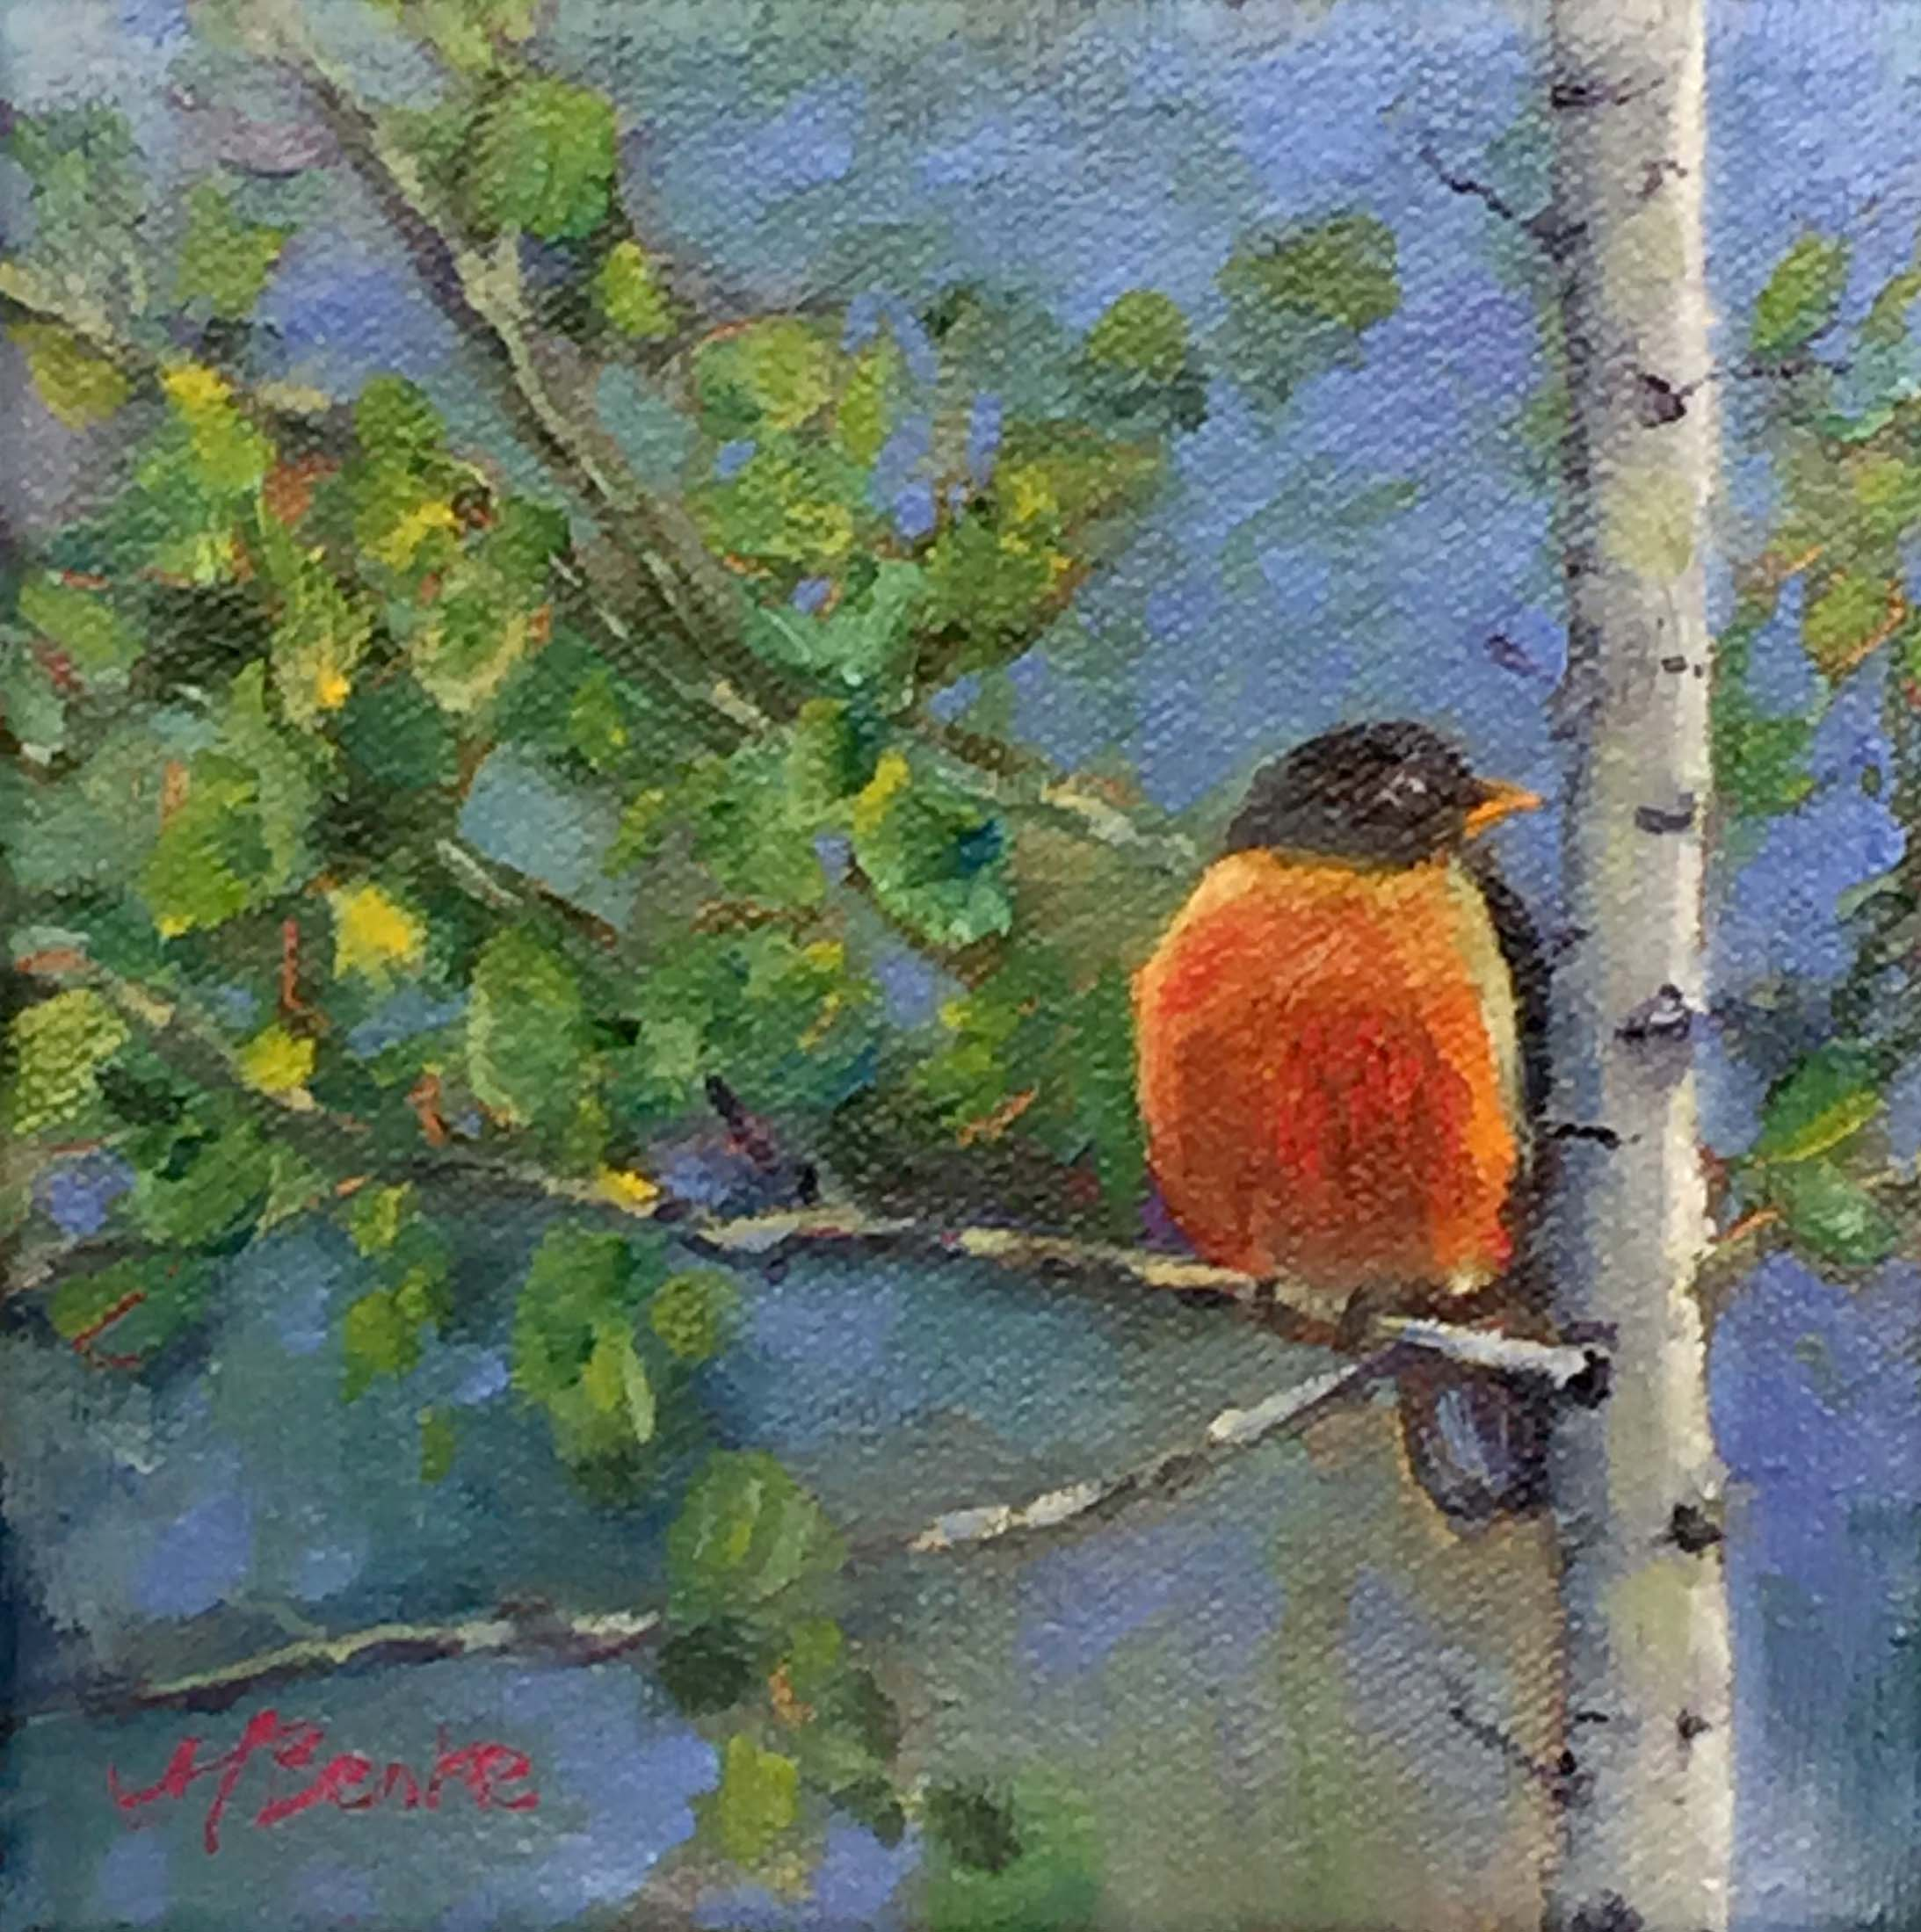 A harbinger of spring, a plump robin sits on an aspen tree branch in a square format oil painting by Mary Benke